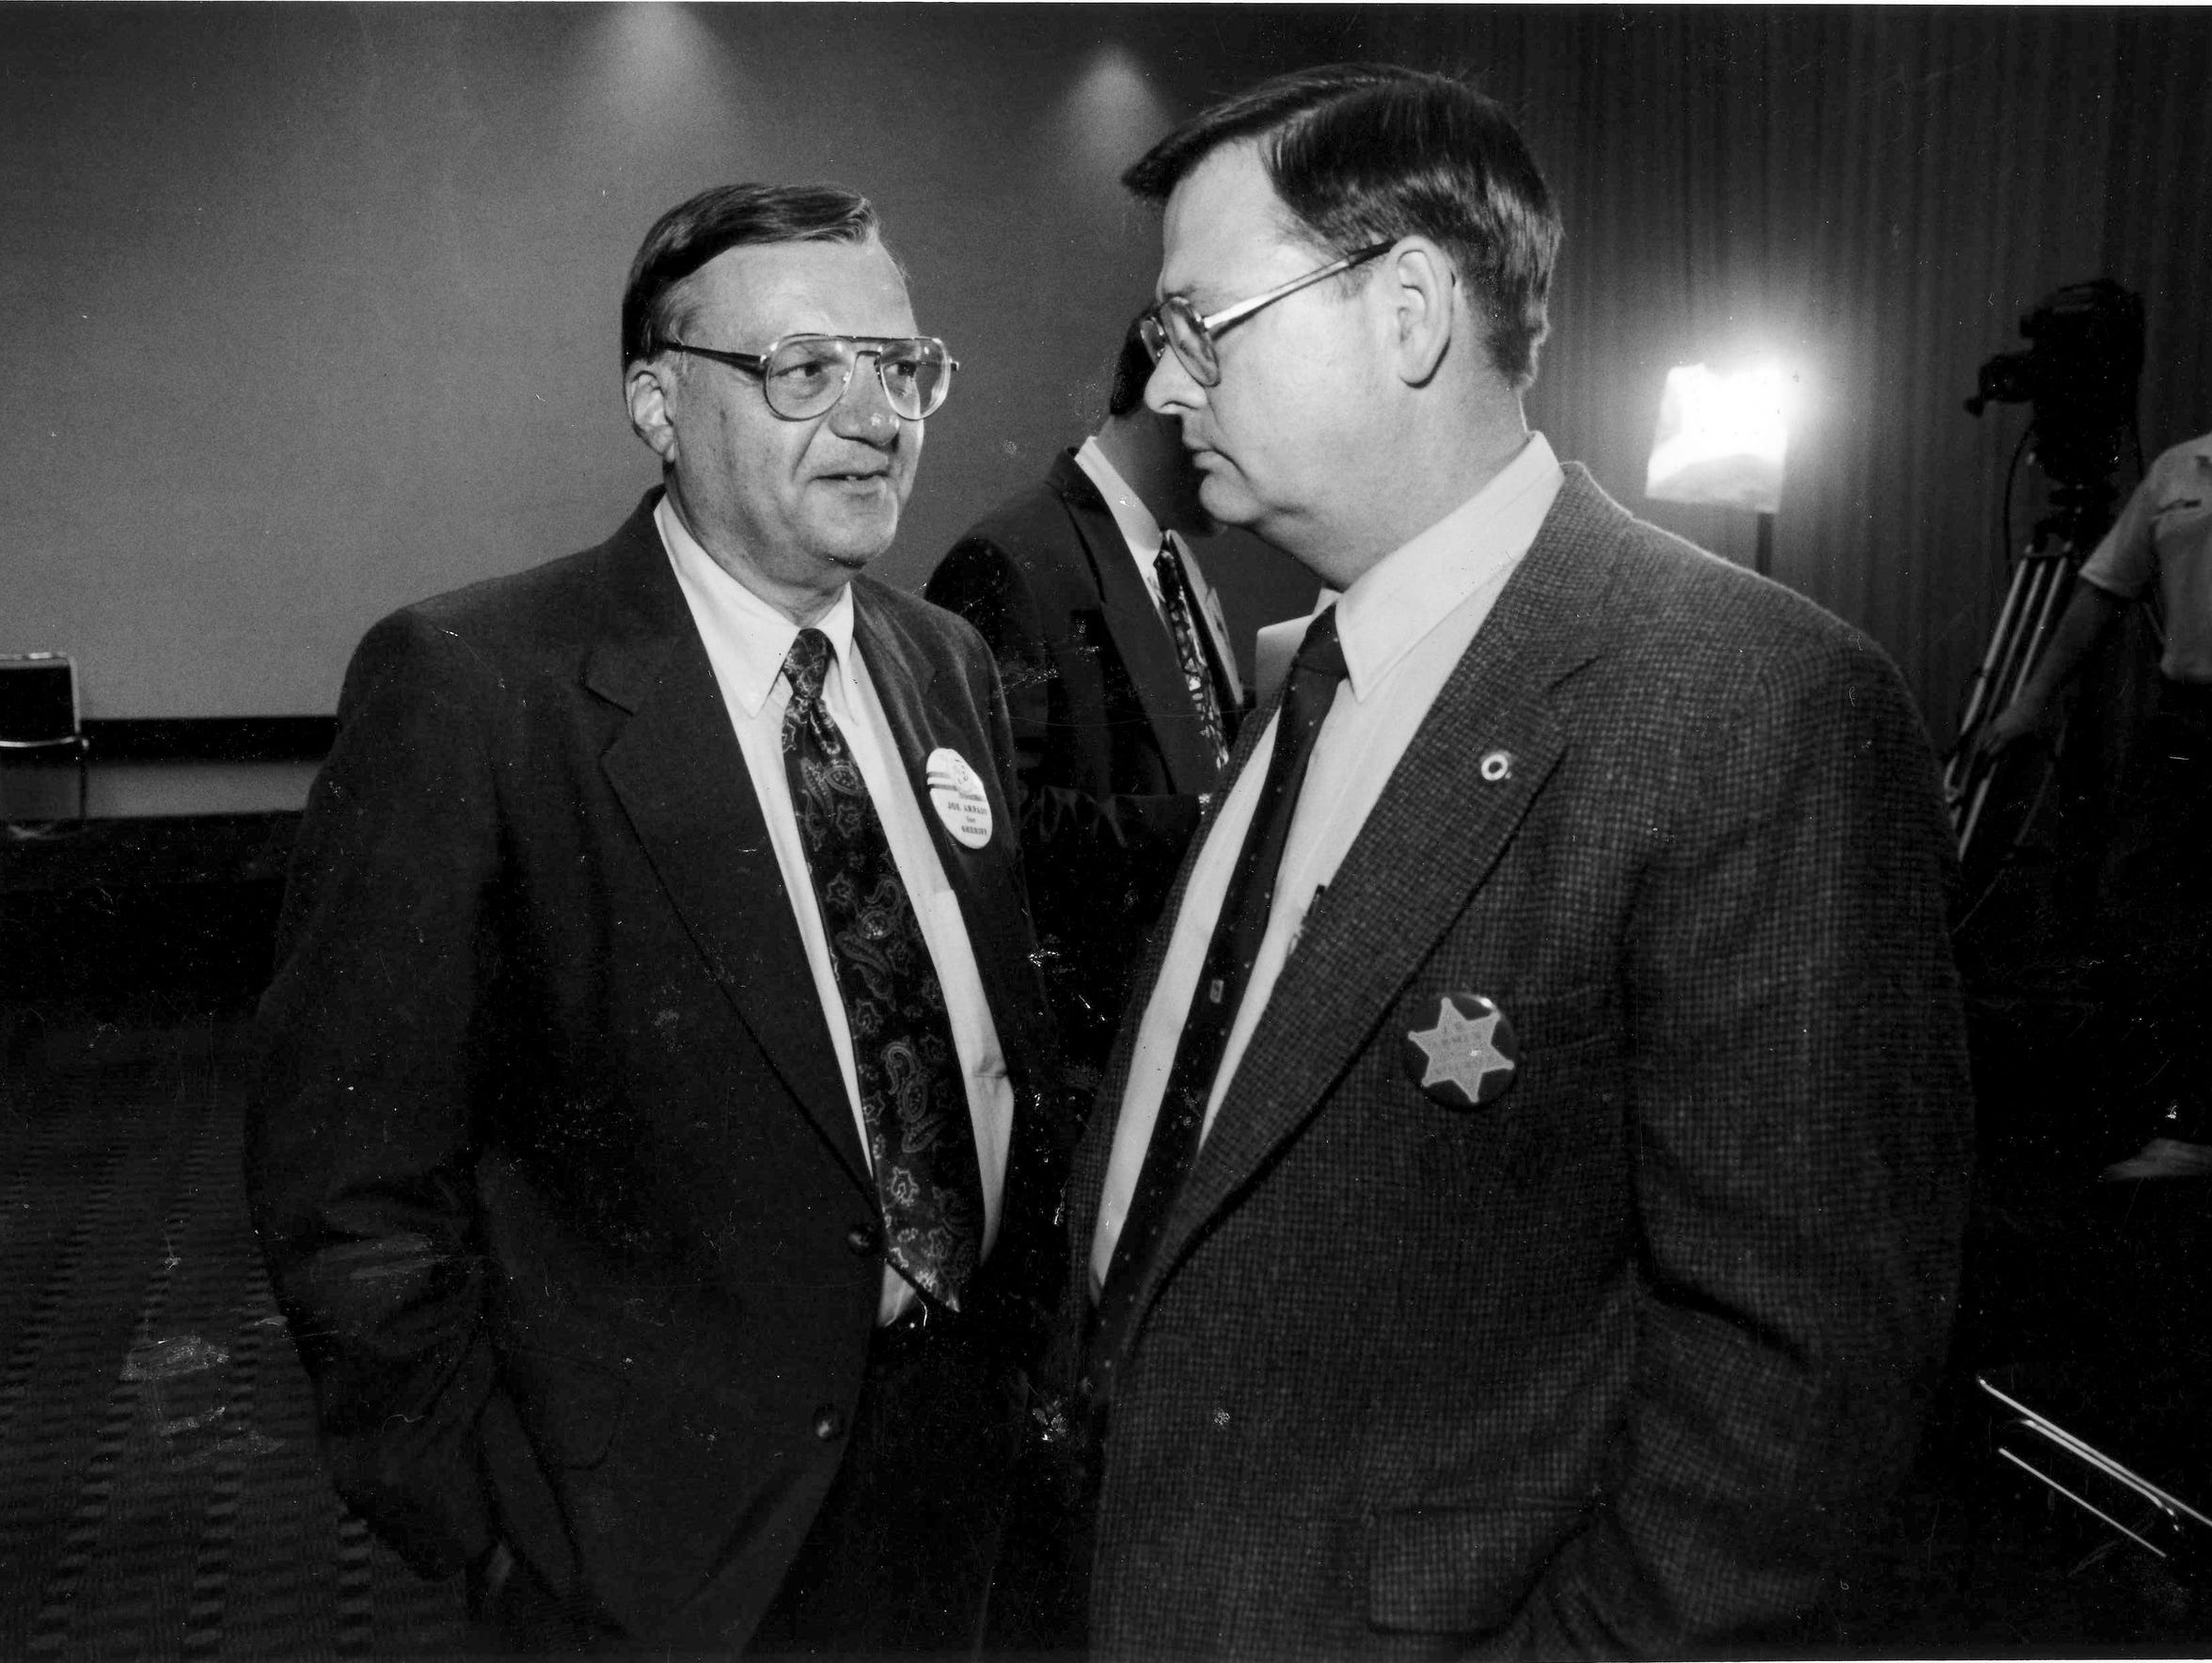 Arpaio (left) talks with J.R. Armer, a Democratic candidate